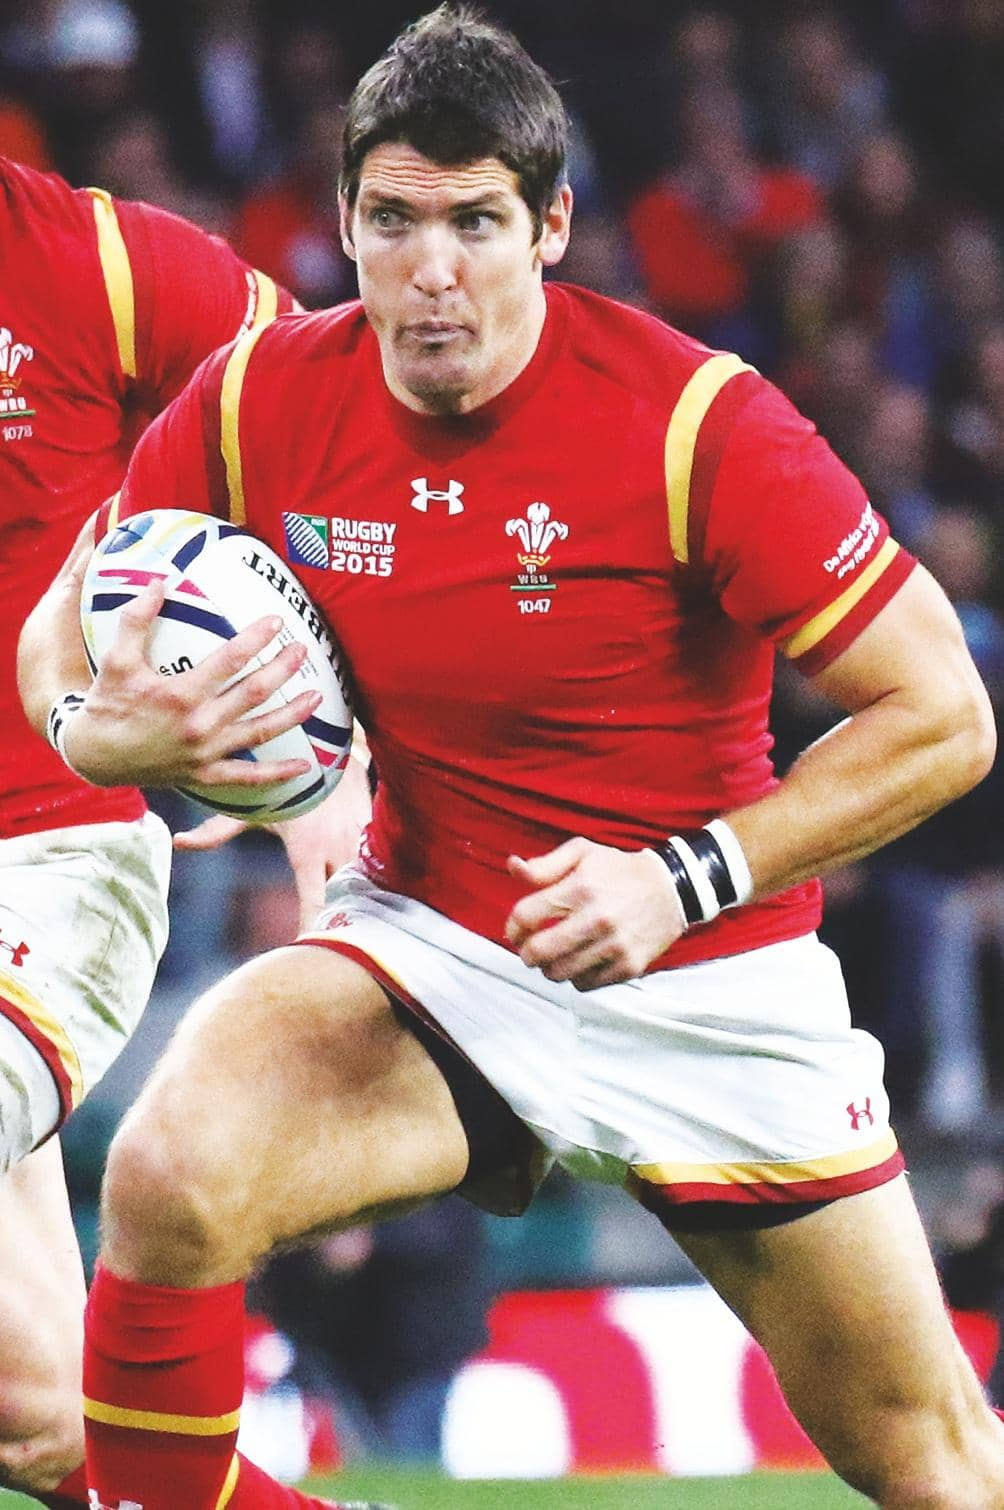 Mystery of Hook and that Wales No10 shirt